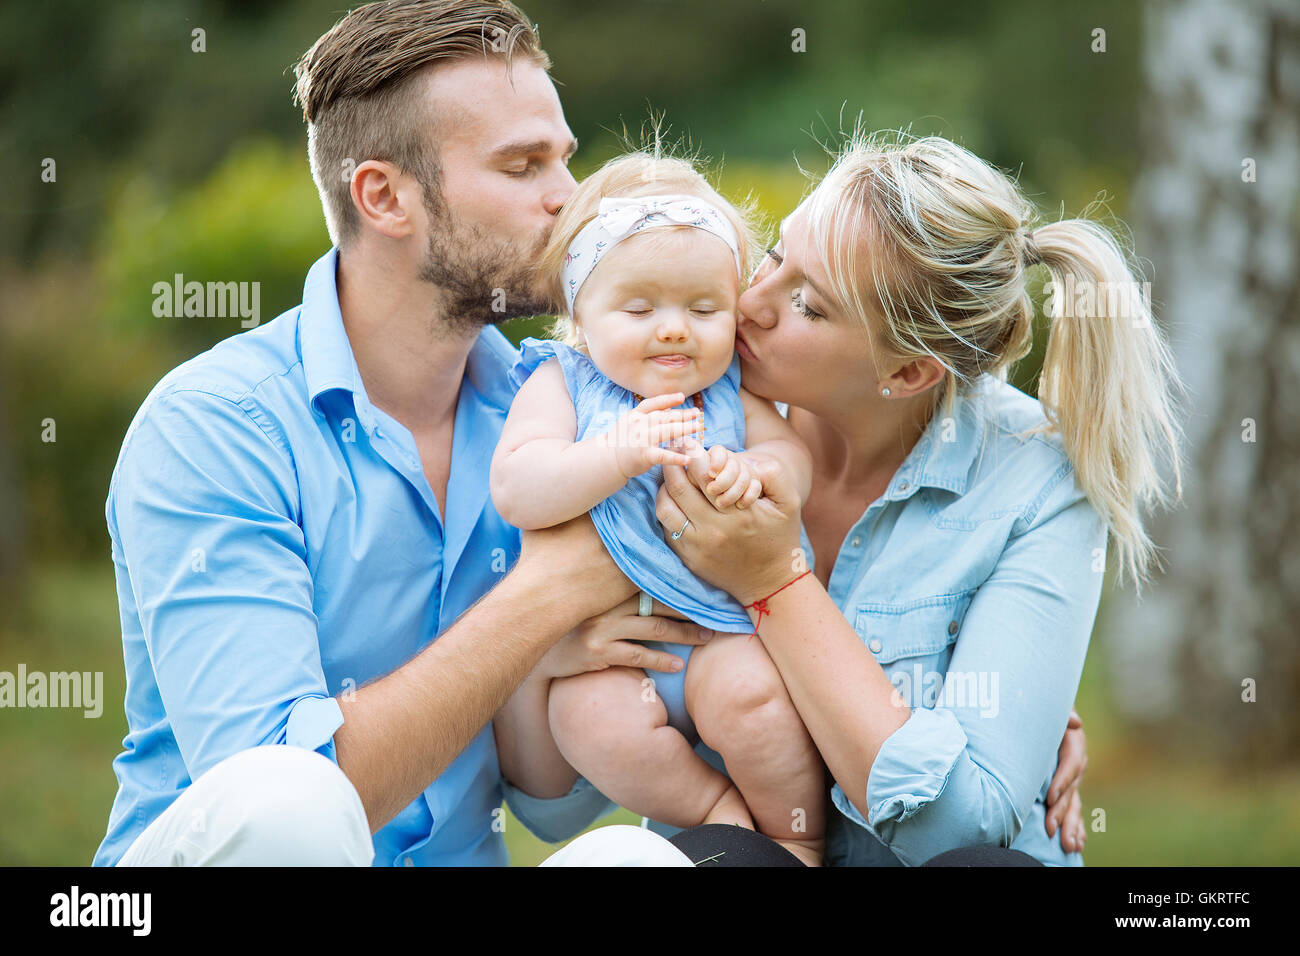 Portrait of parents kissing their baby girl - Stock Image